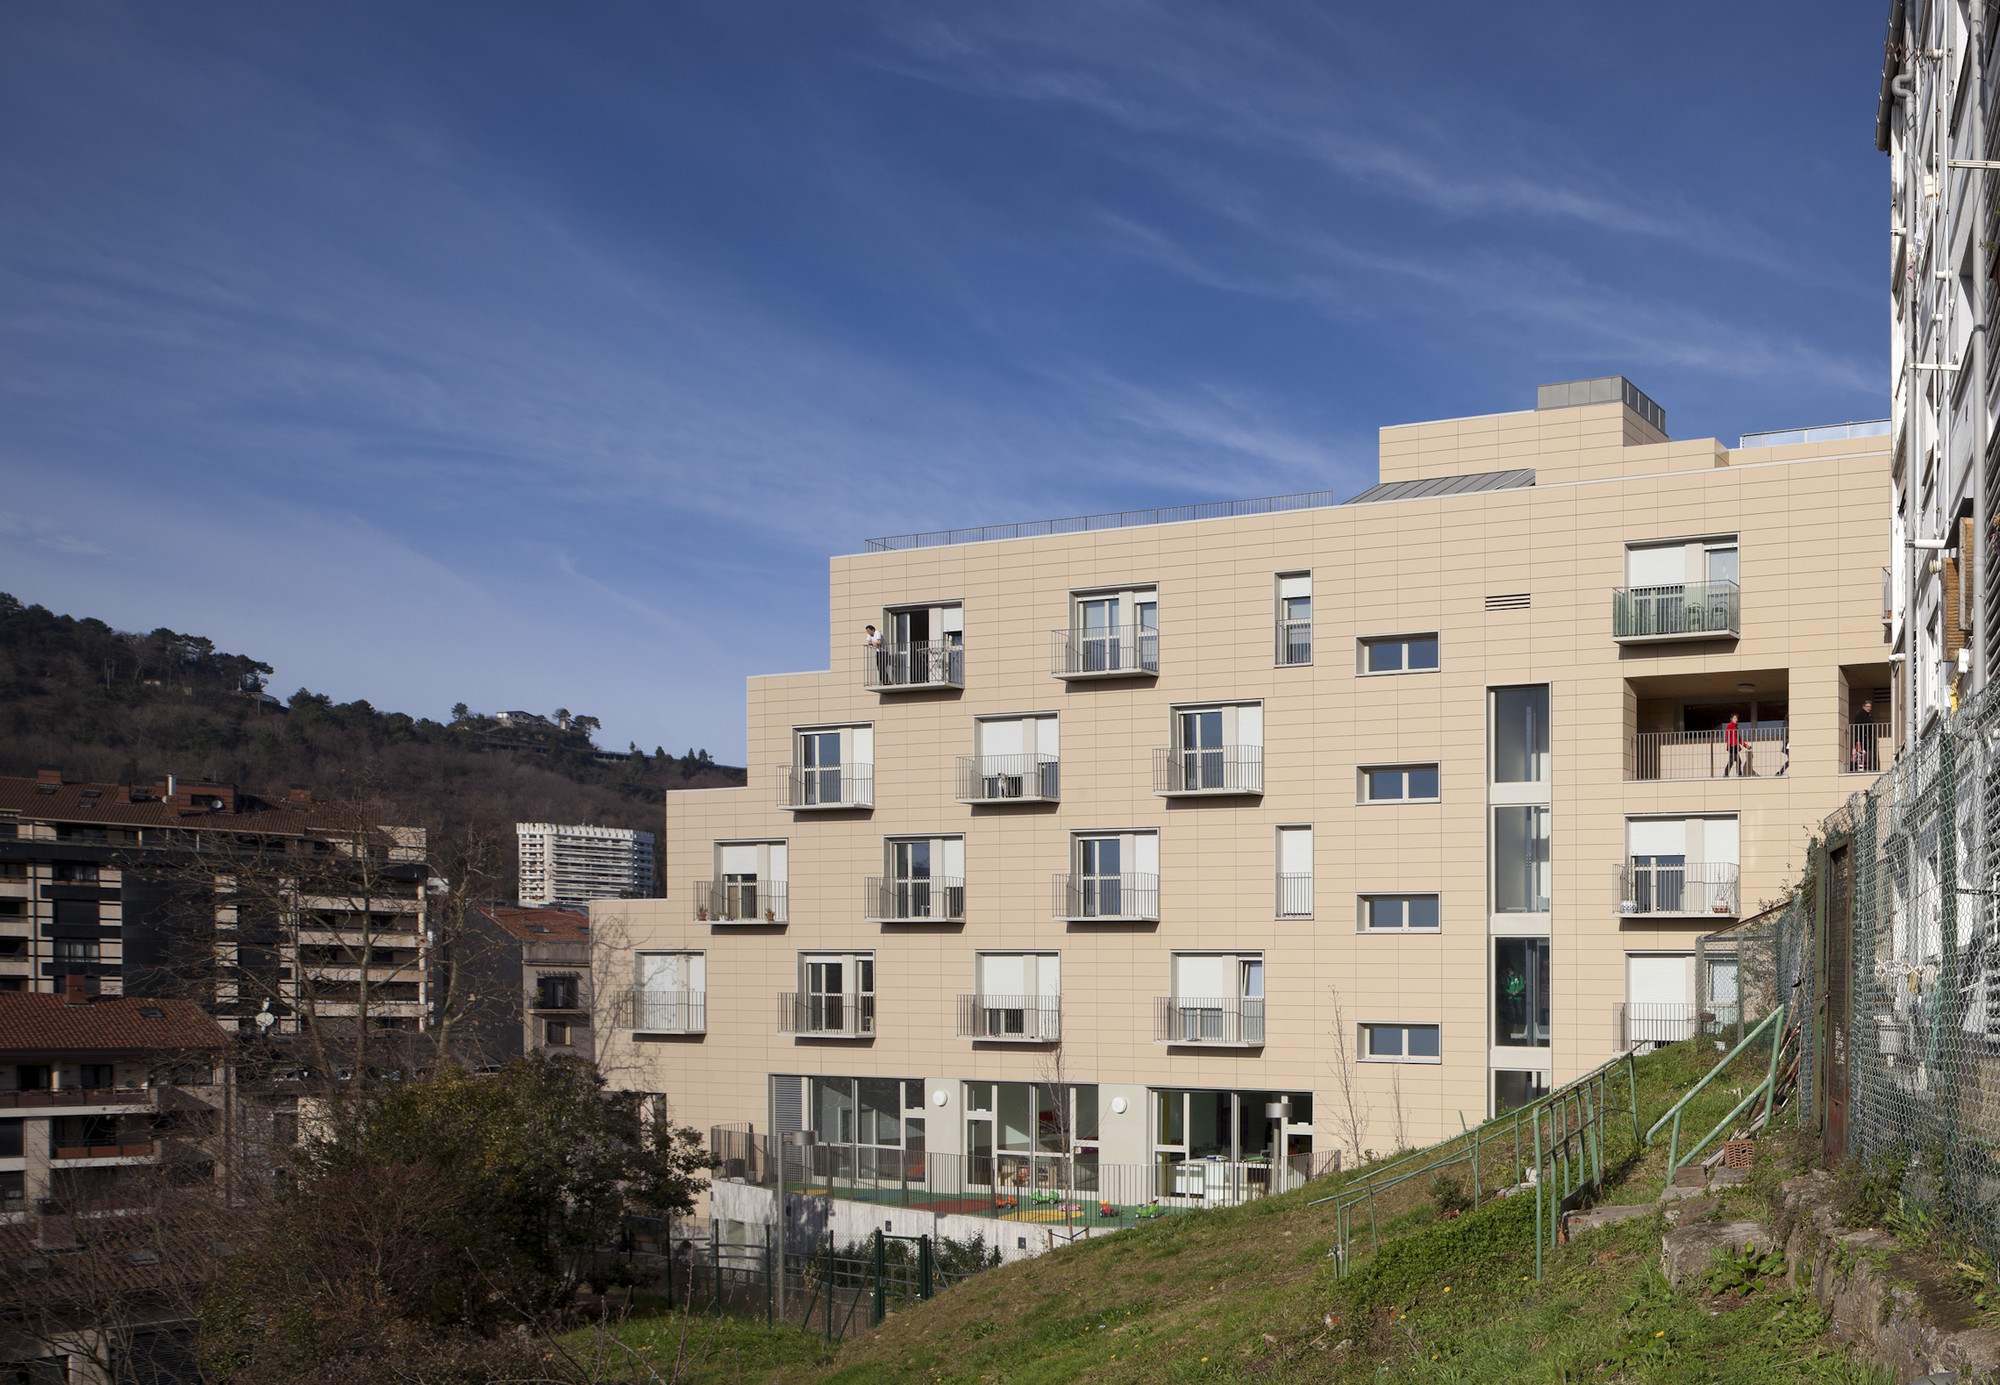 Apartments For Young People, Nursery And Park In San Sebastián / Ignacio Quemada Arquitectos, © Alejo Bagué